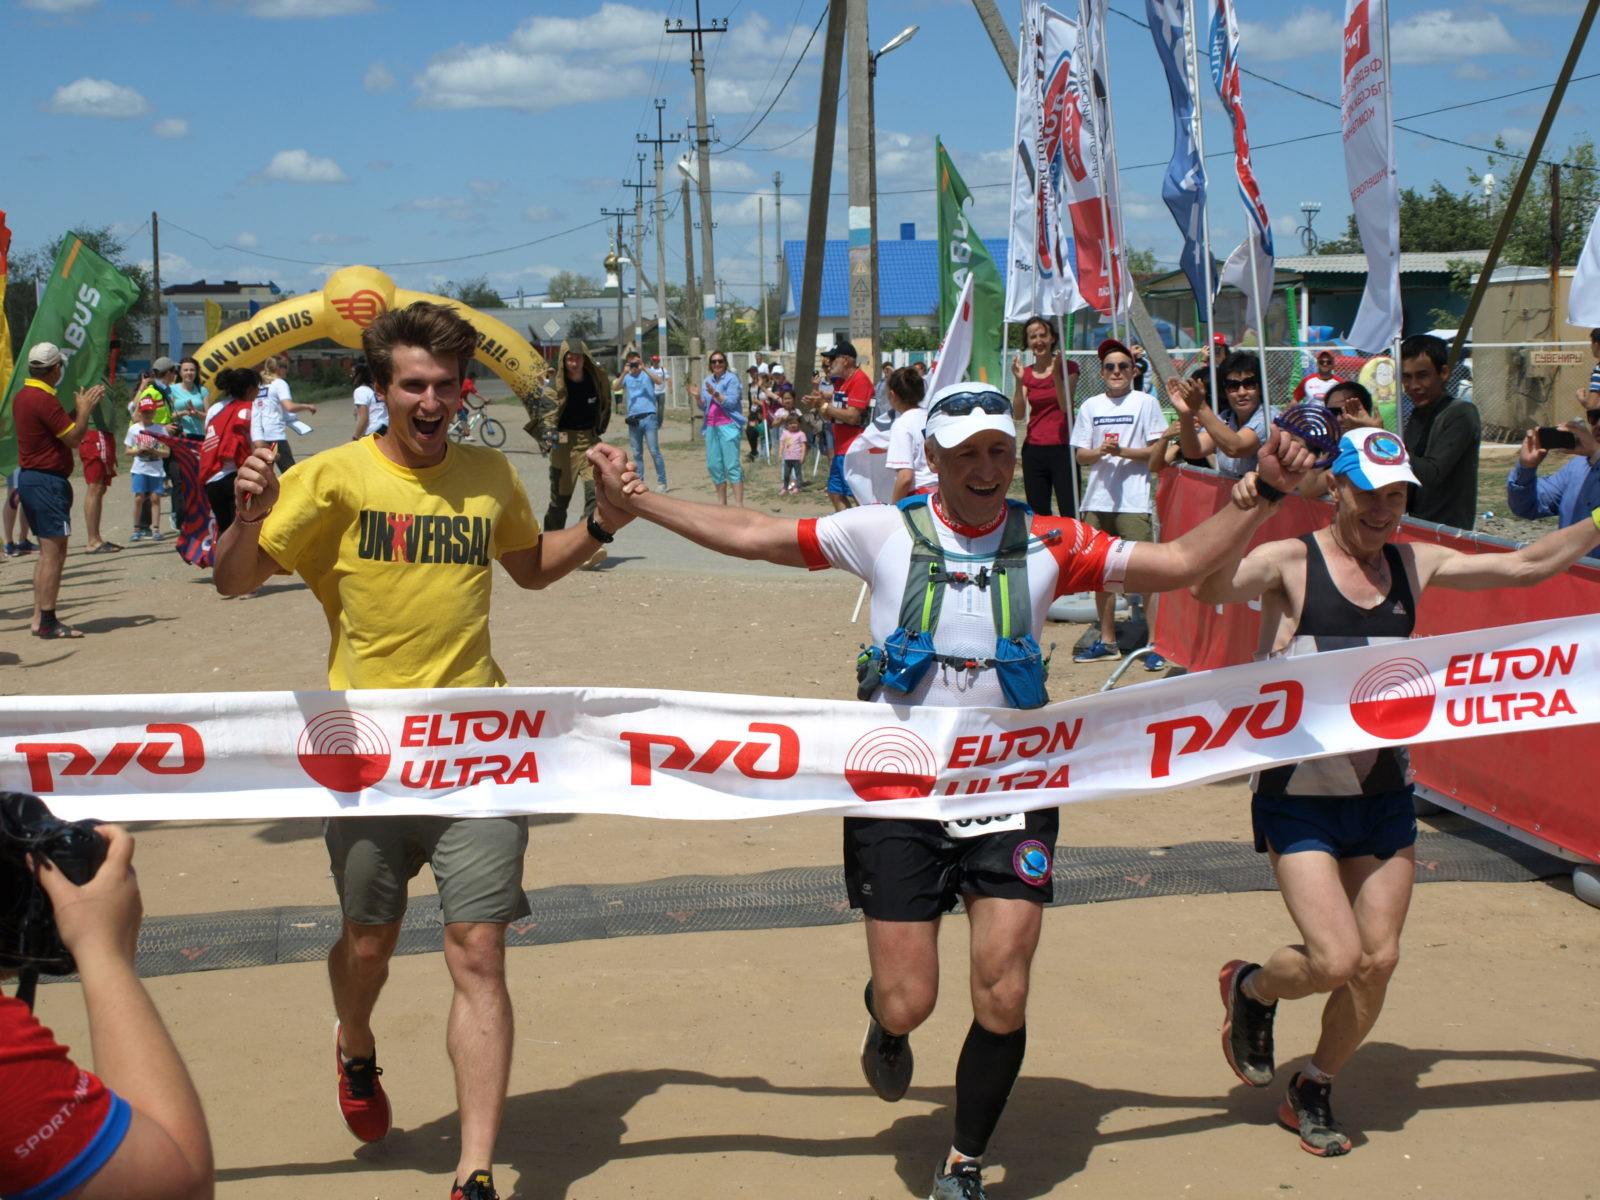 ELTON ULTRA LOST LAKES ULTRA & LOST LAKES RELAY 205 KM